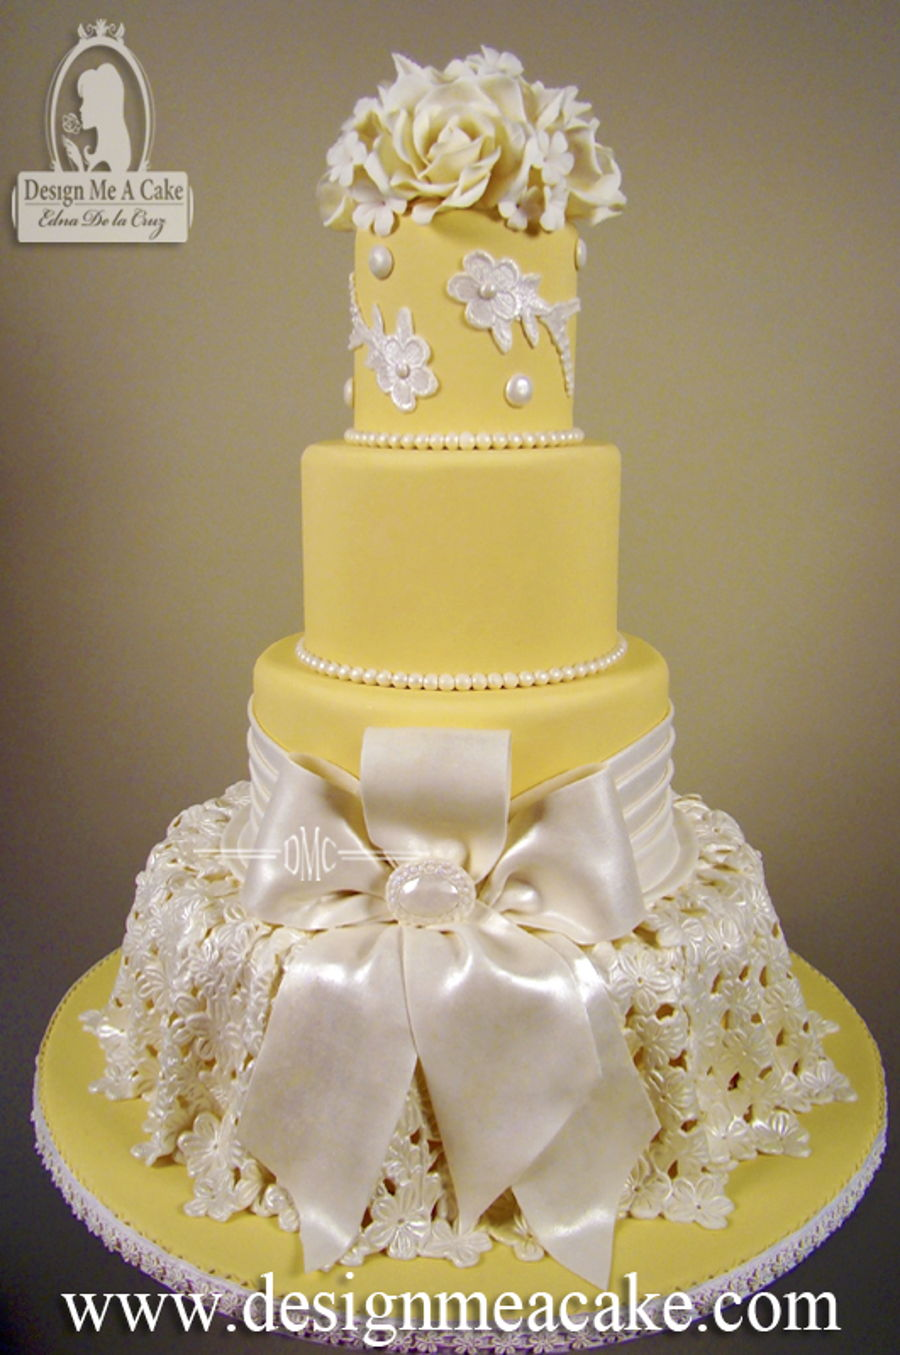 Lace And Bows - CakeCentral.com